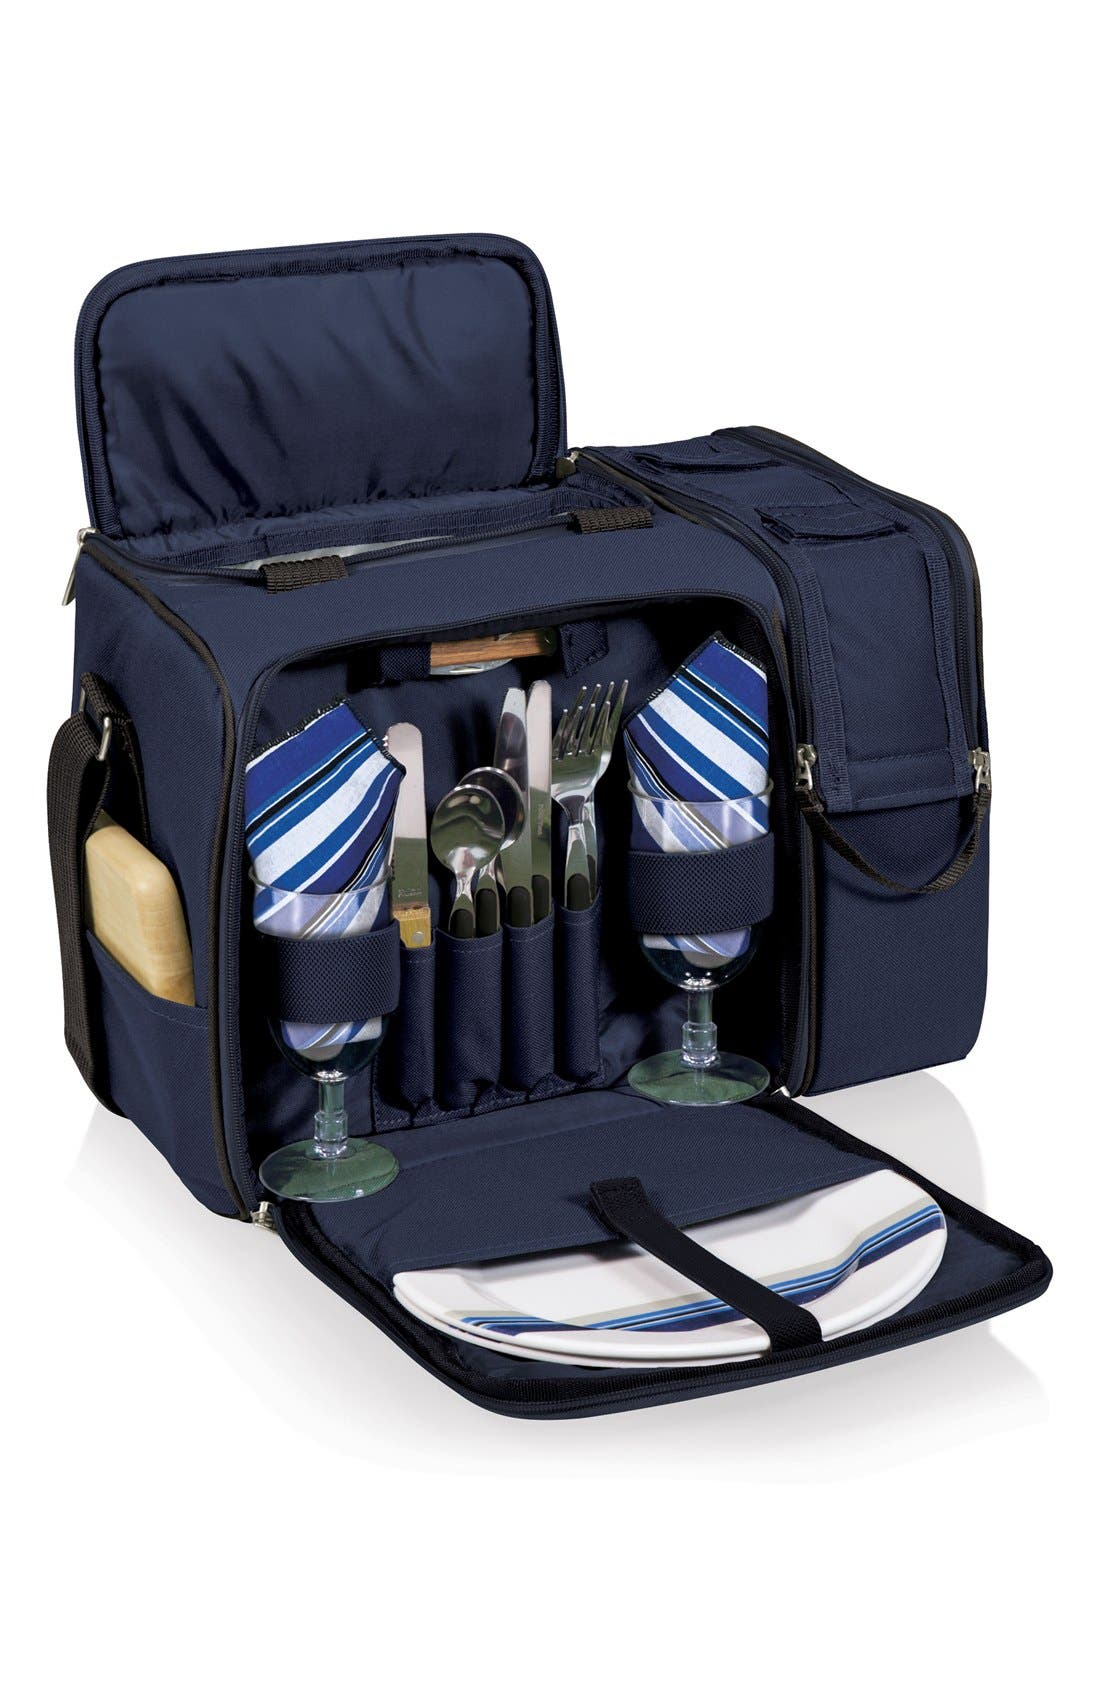 Picnic Time 'Malibu' Insulated Picnic Tote